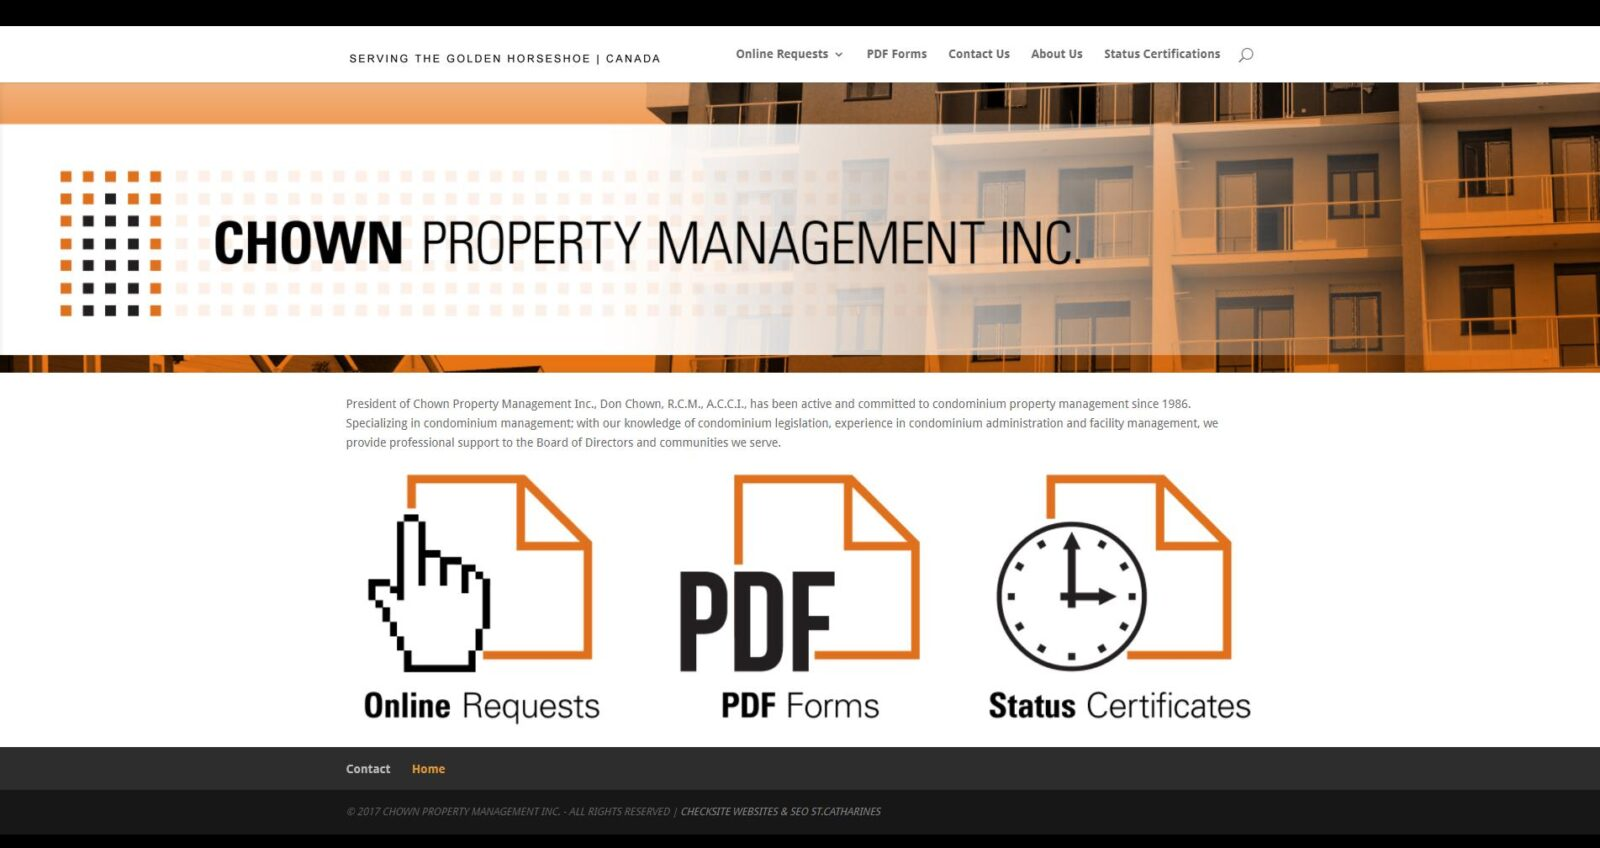 Chown Property Management Inc.